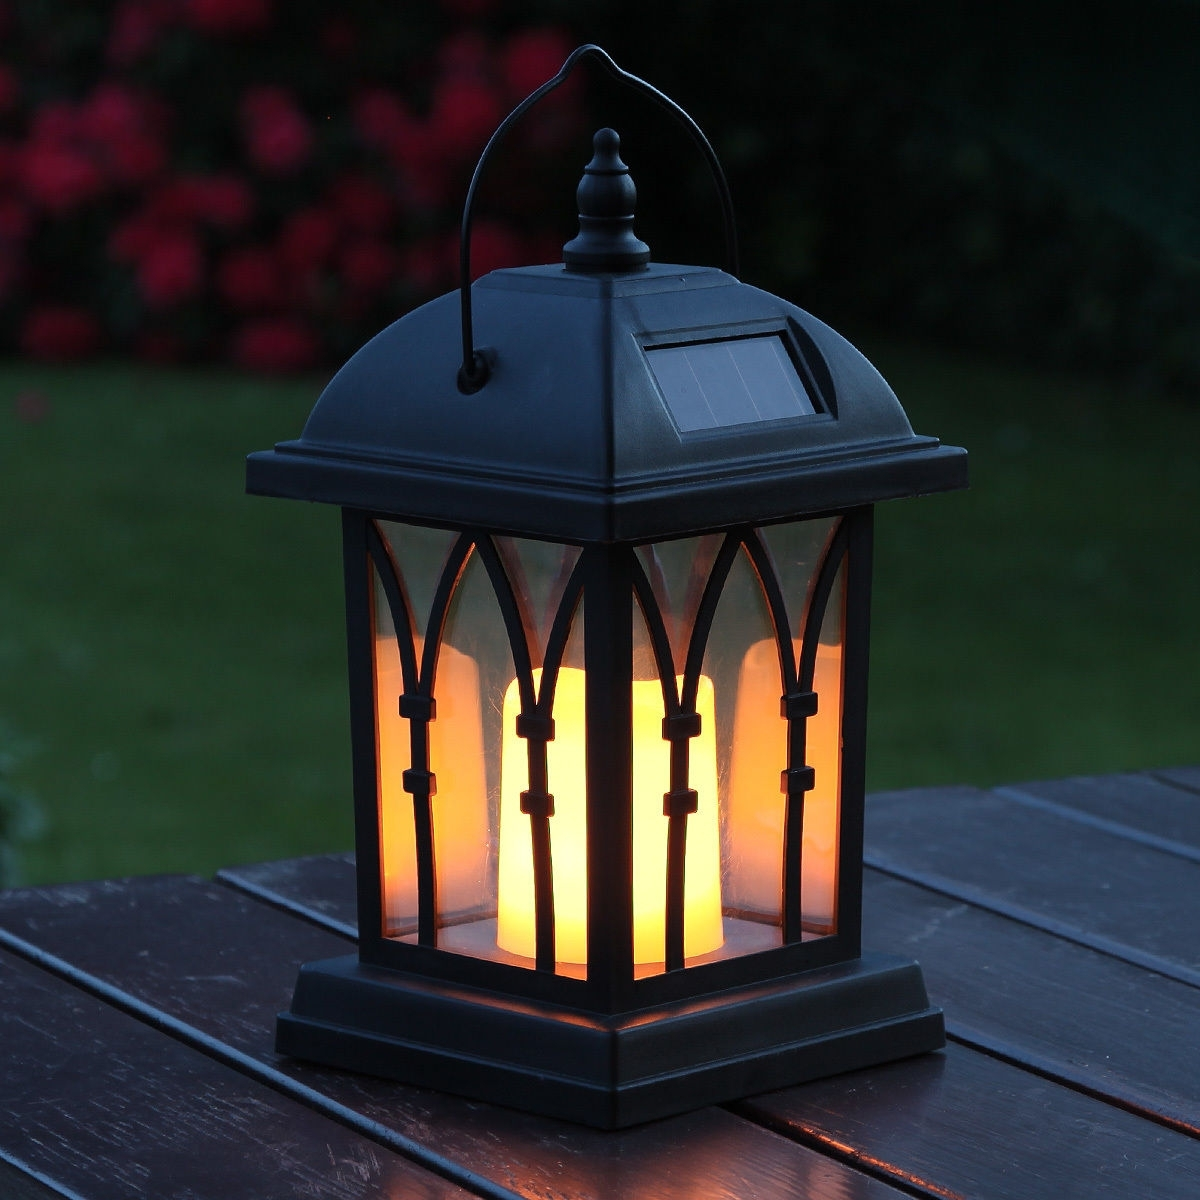 Fashionable Outdoor Décor Candle Lanterns , Garden Lighting , Garden & Patio For Outdoor Empty Lanterns (View 7 of 20)